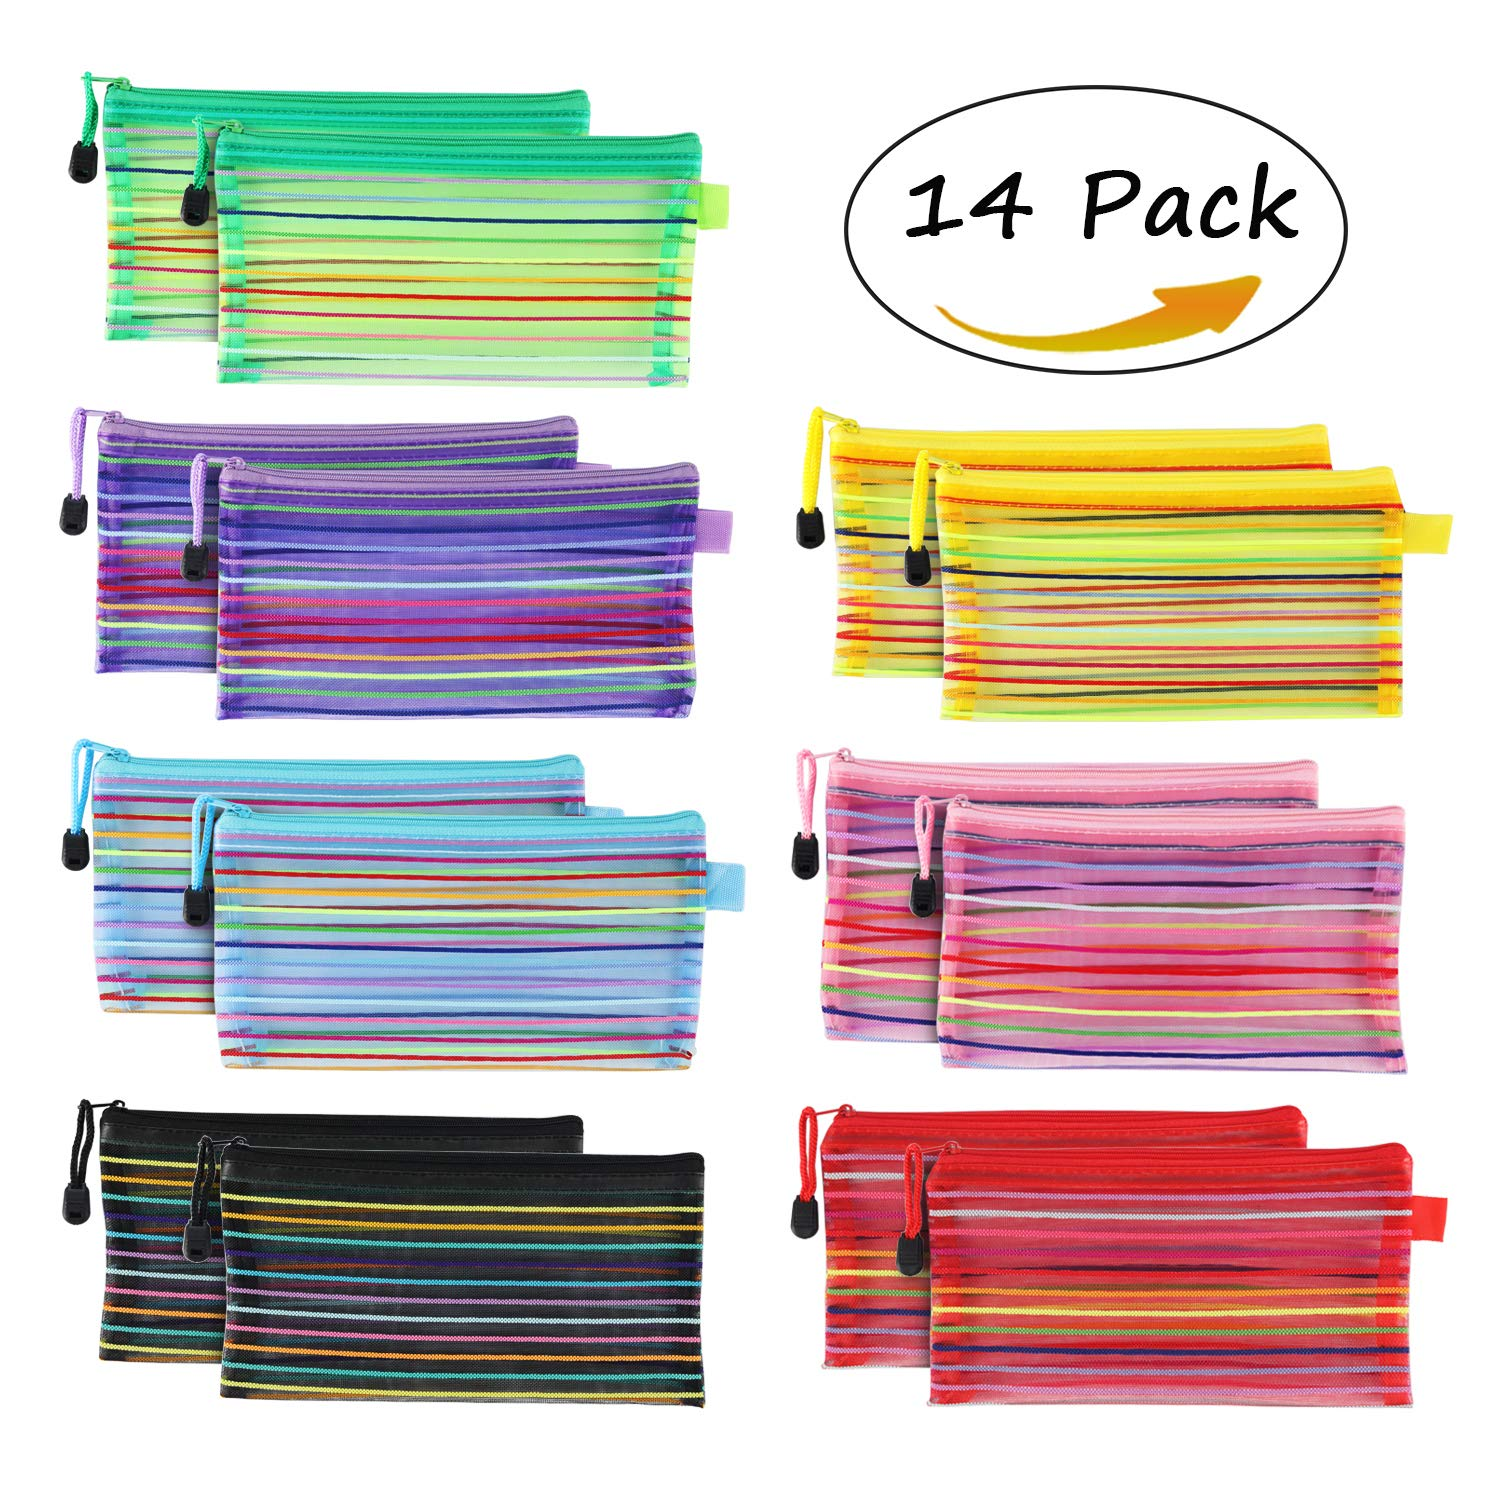 A6 Size Zipper Mesh Pouch, SEEOOR 7 Colors Multipurpose Travel Bag for Cosmetics Offices Supplies/Personal Supplies/Travel Accessories (14 Pieces)